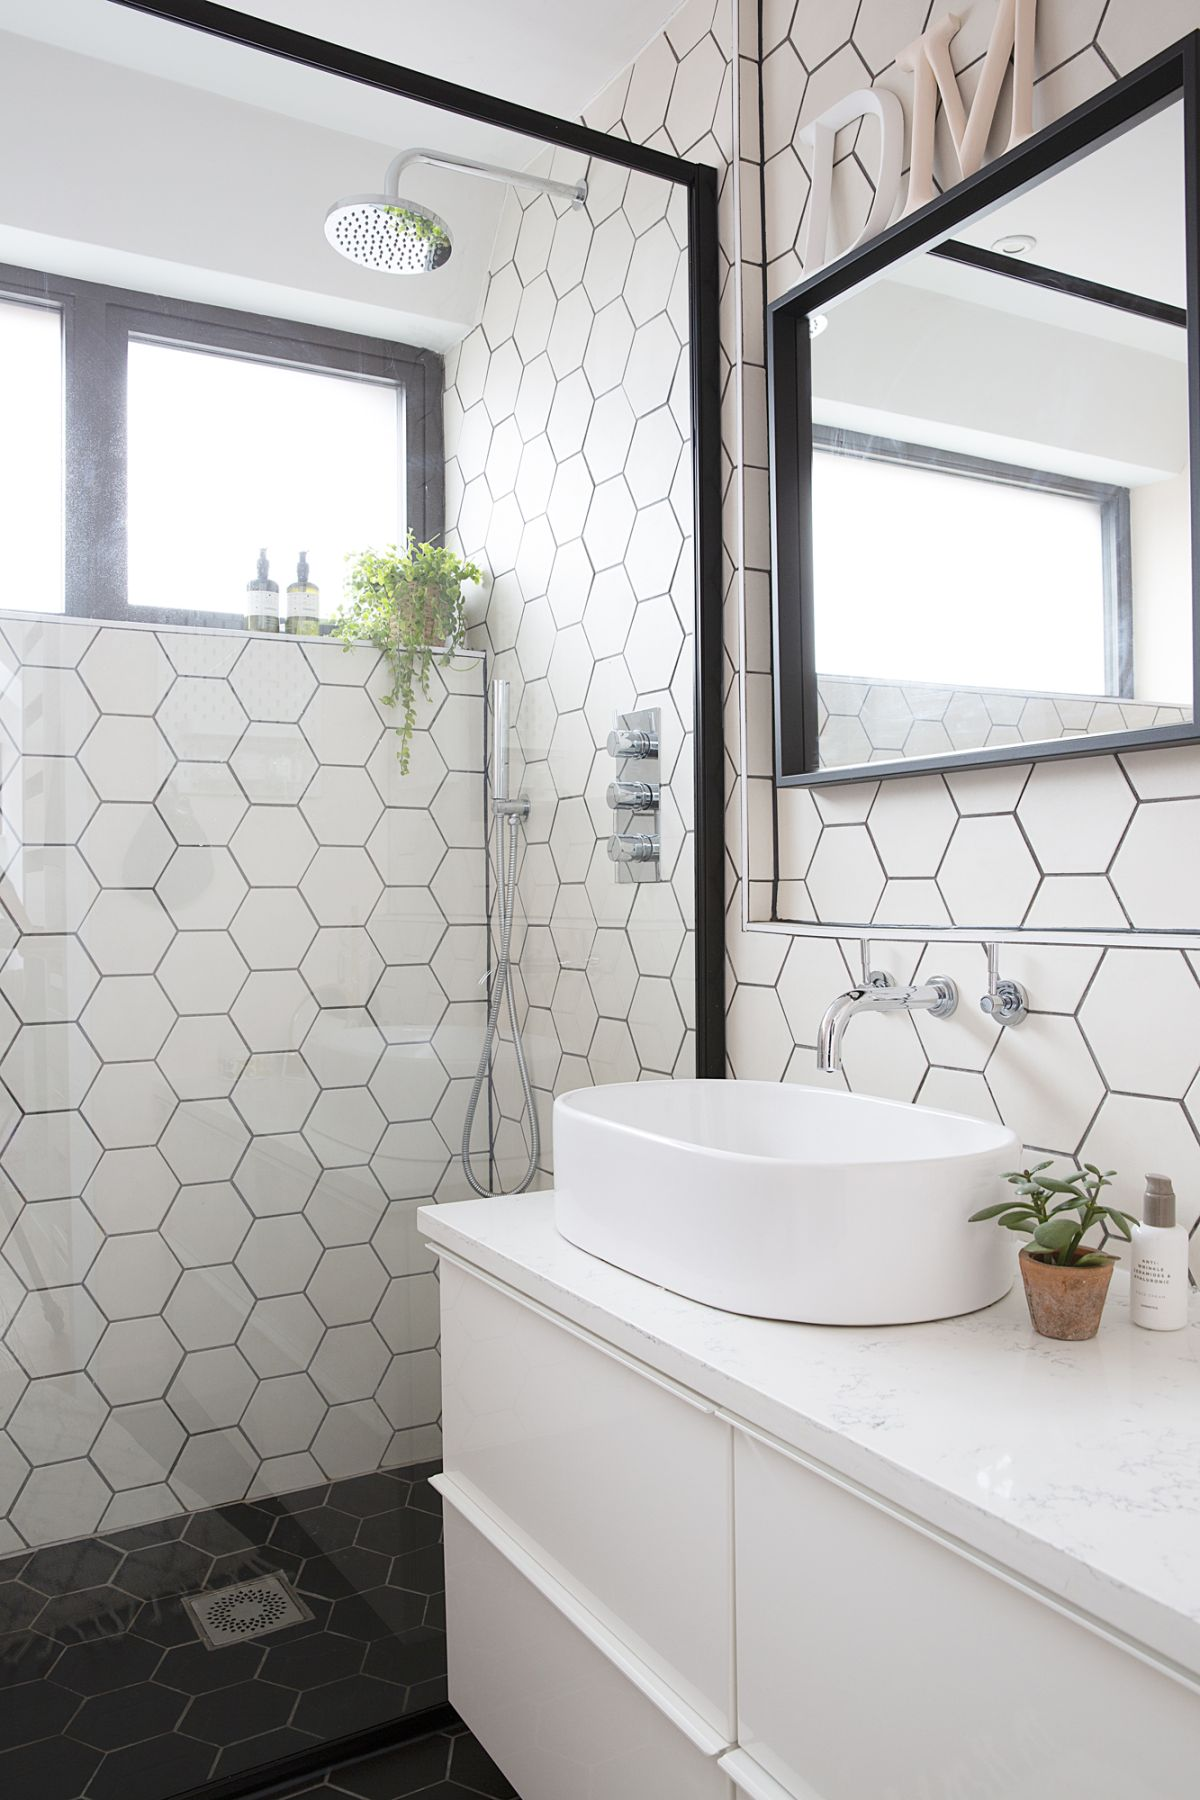 Groovy How To Pick The Right Size Tiles For A Small Bathroom Real Home Interior And Landscaping Palasignezvosmurscom